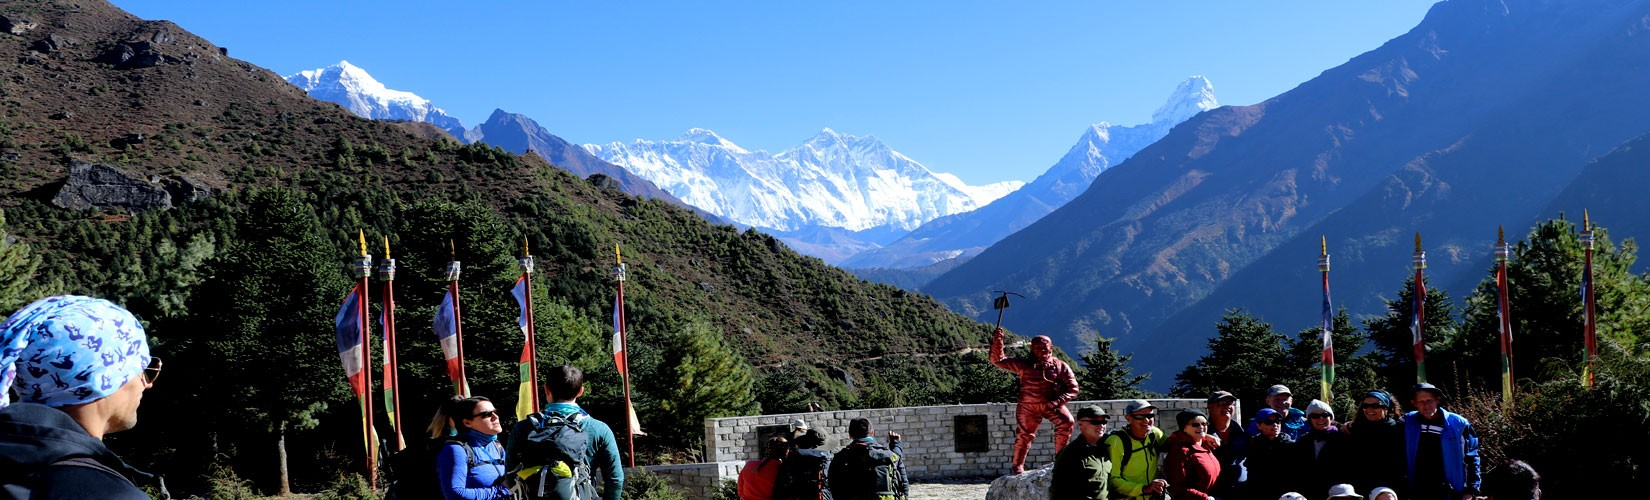 View from Everest National Park Namche Bazaar